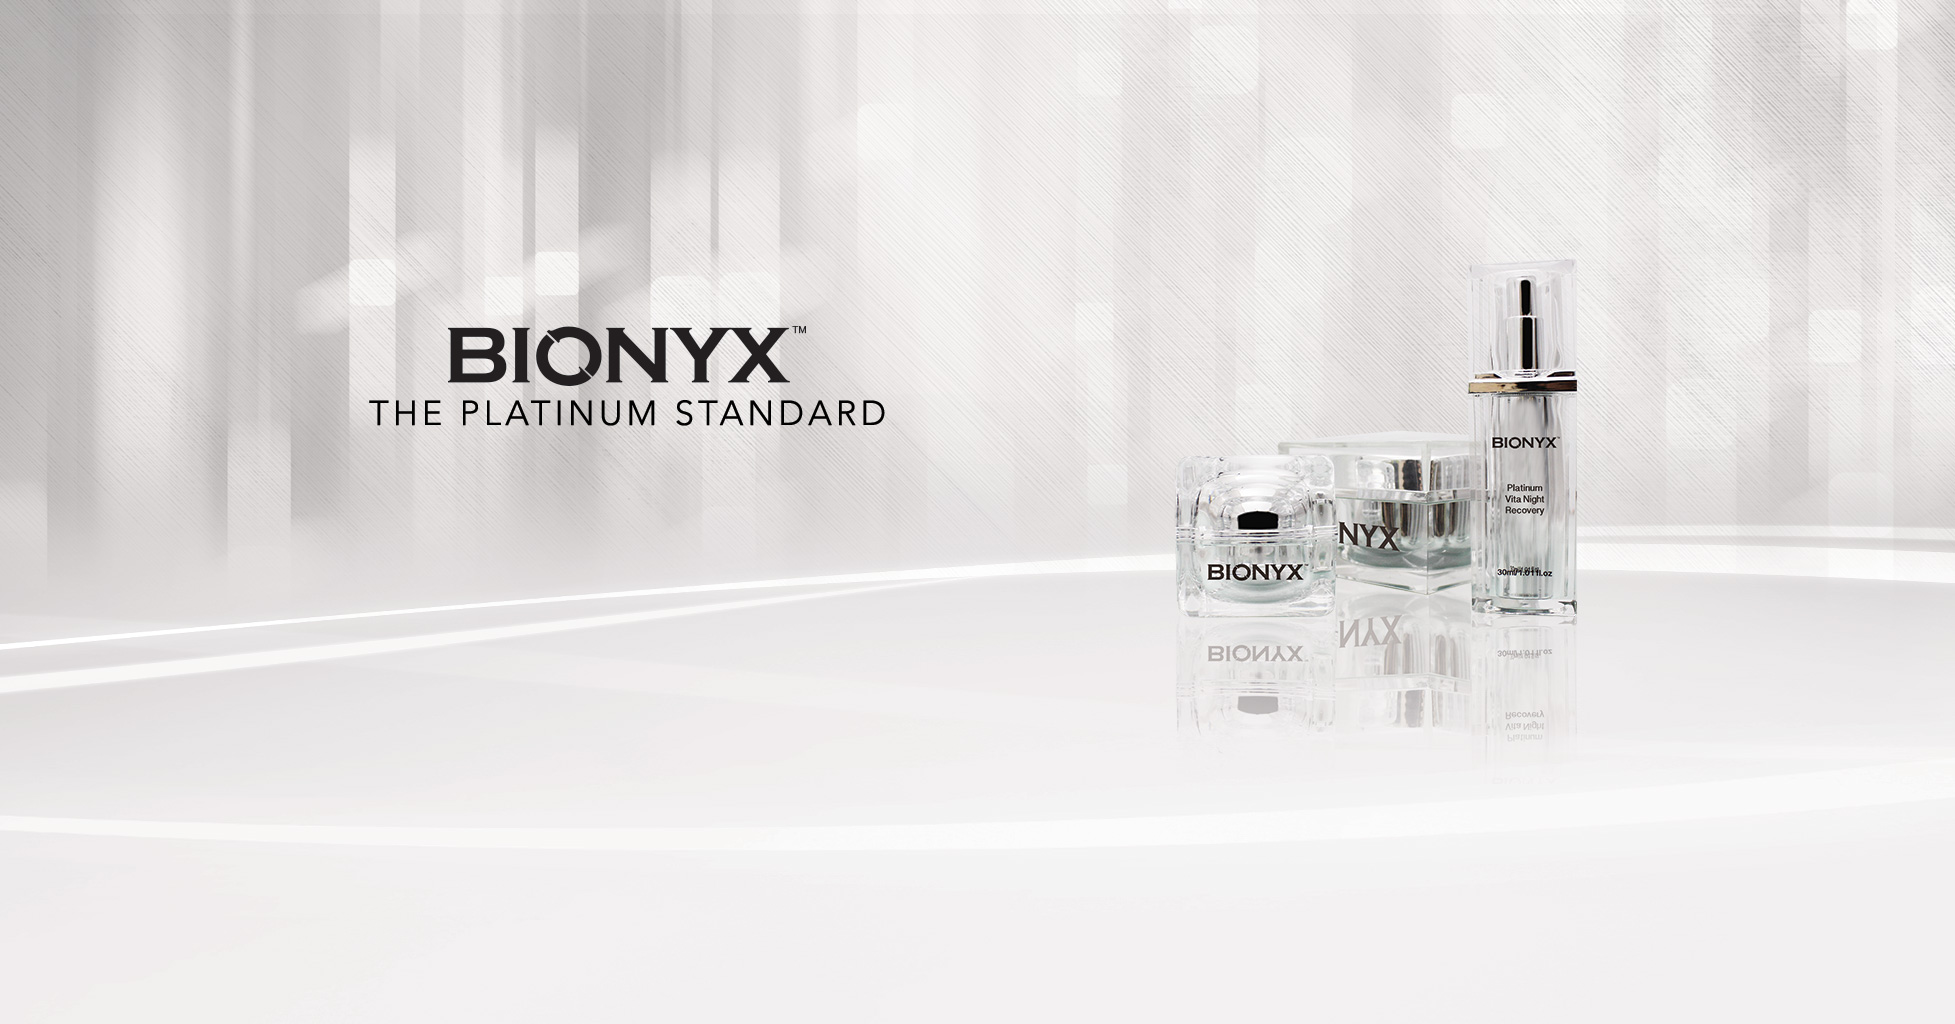 Bionyx – The Platinum Standard